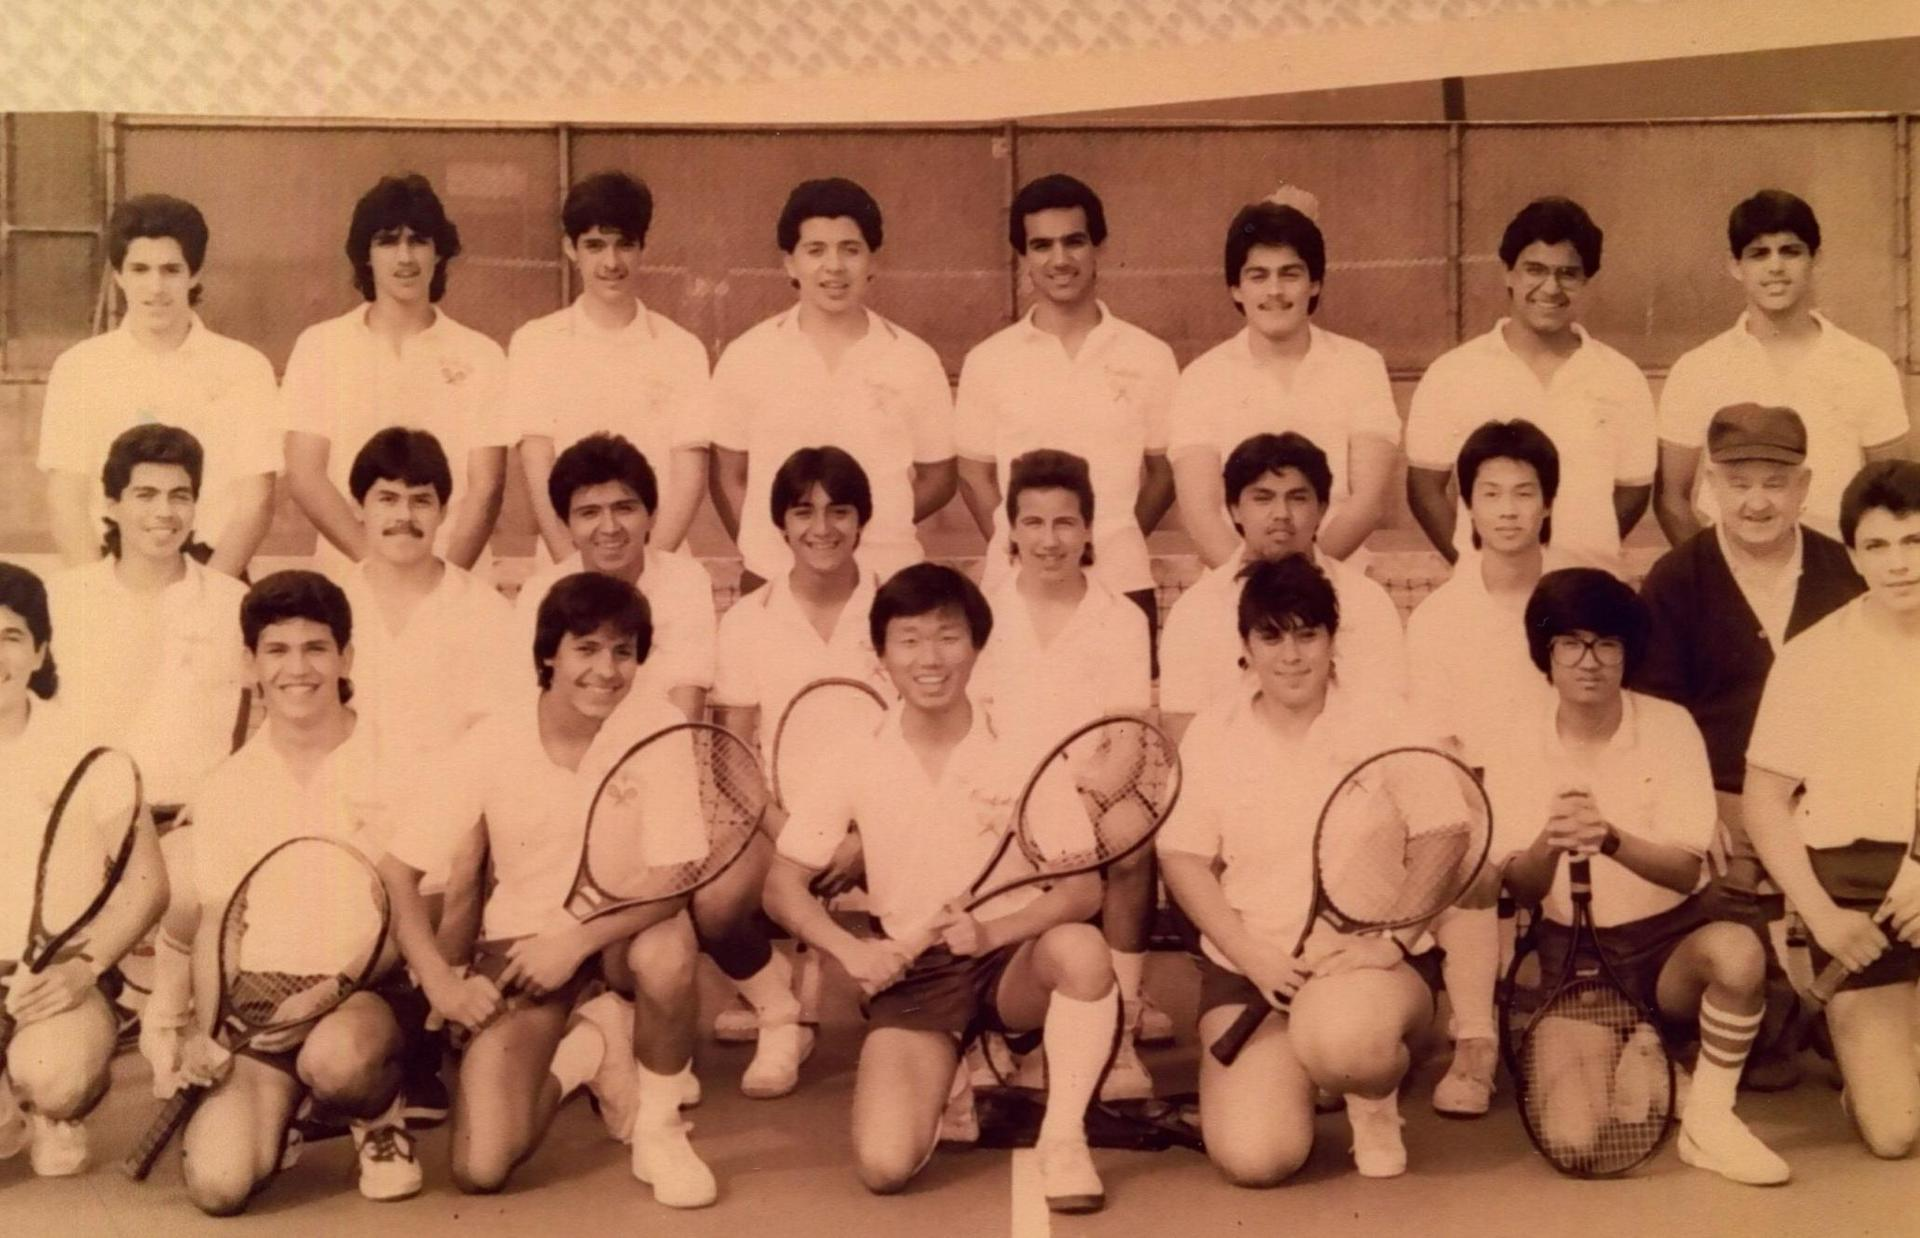 He coached so many tennis teams to championships